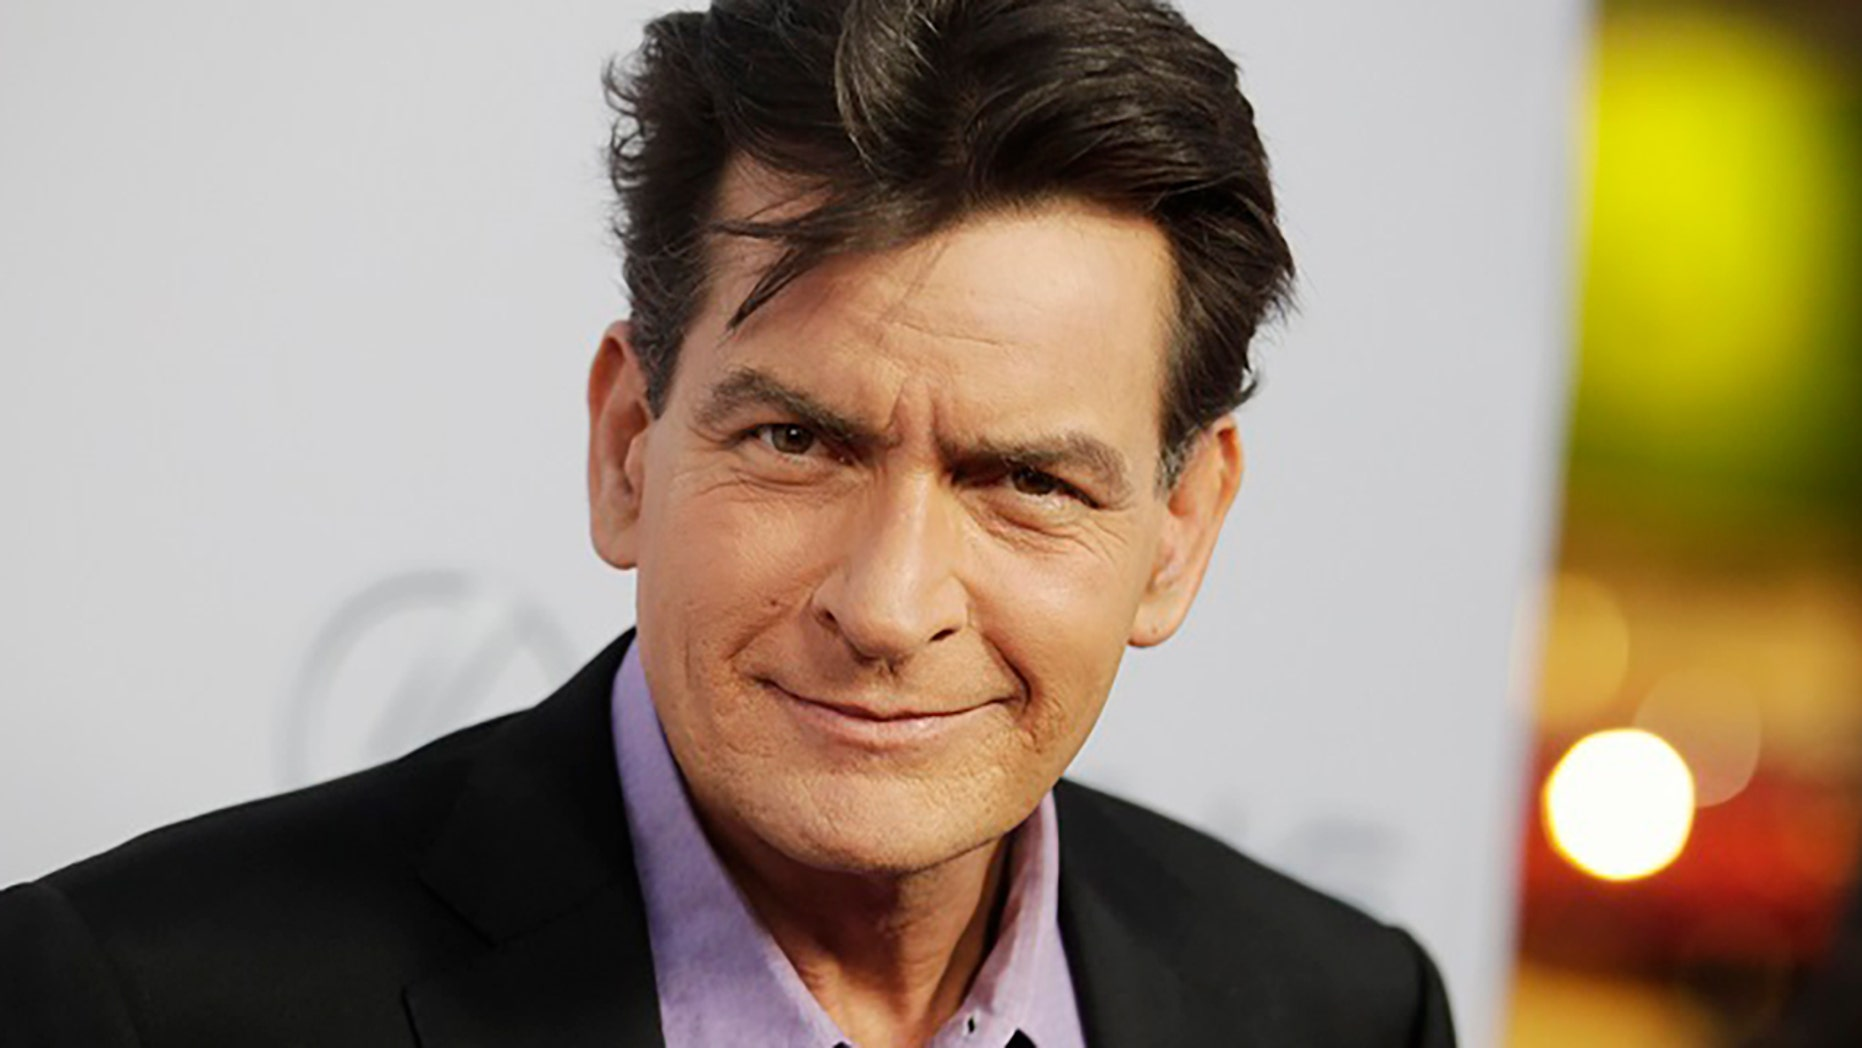 """Charlie Sheen is reportedly struggling to find work as an actor after being """"blacklisted"""" from Hollywood."""